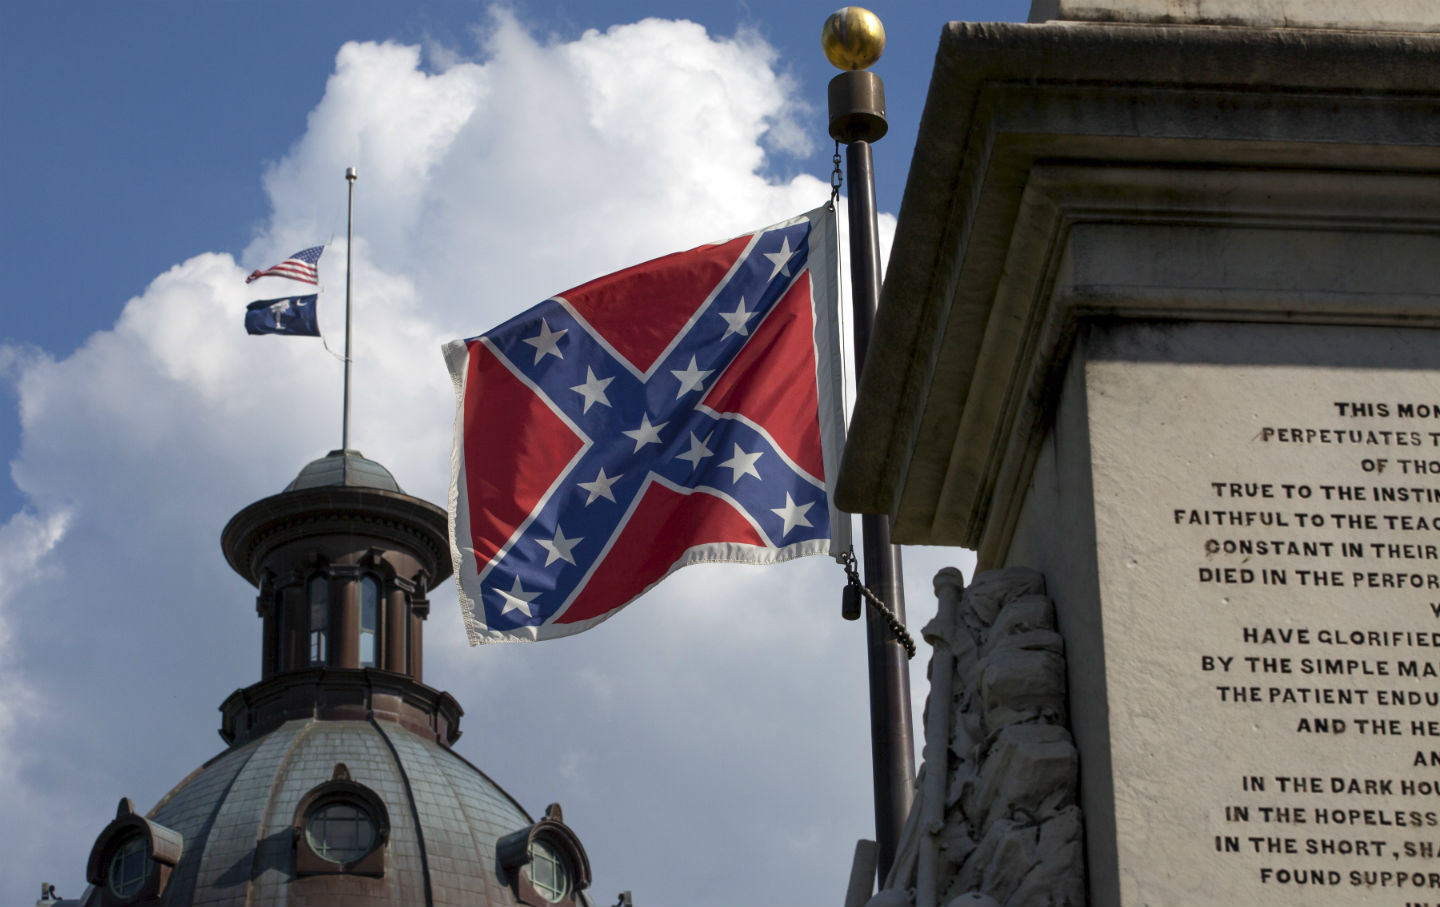 the purpose and misconceptions of the confederate flag as a symbol of the south The southern economy was fueled by slavery and thus their flag is symbolic of   they donned the confederate flag as their symbol and gave it its racist meaning   a conflict is the one that writes the history, and in that misconceptions thrived.